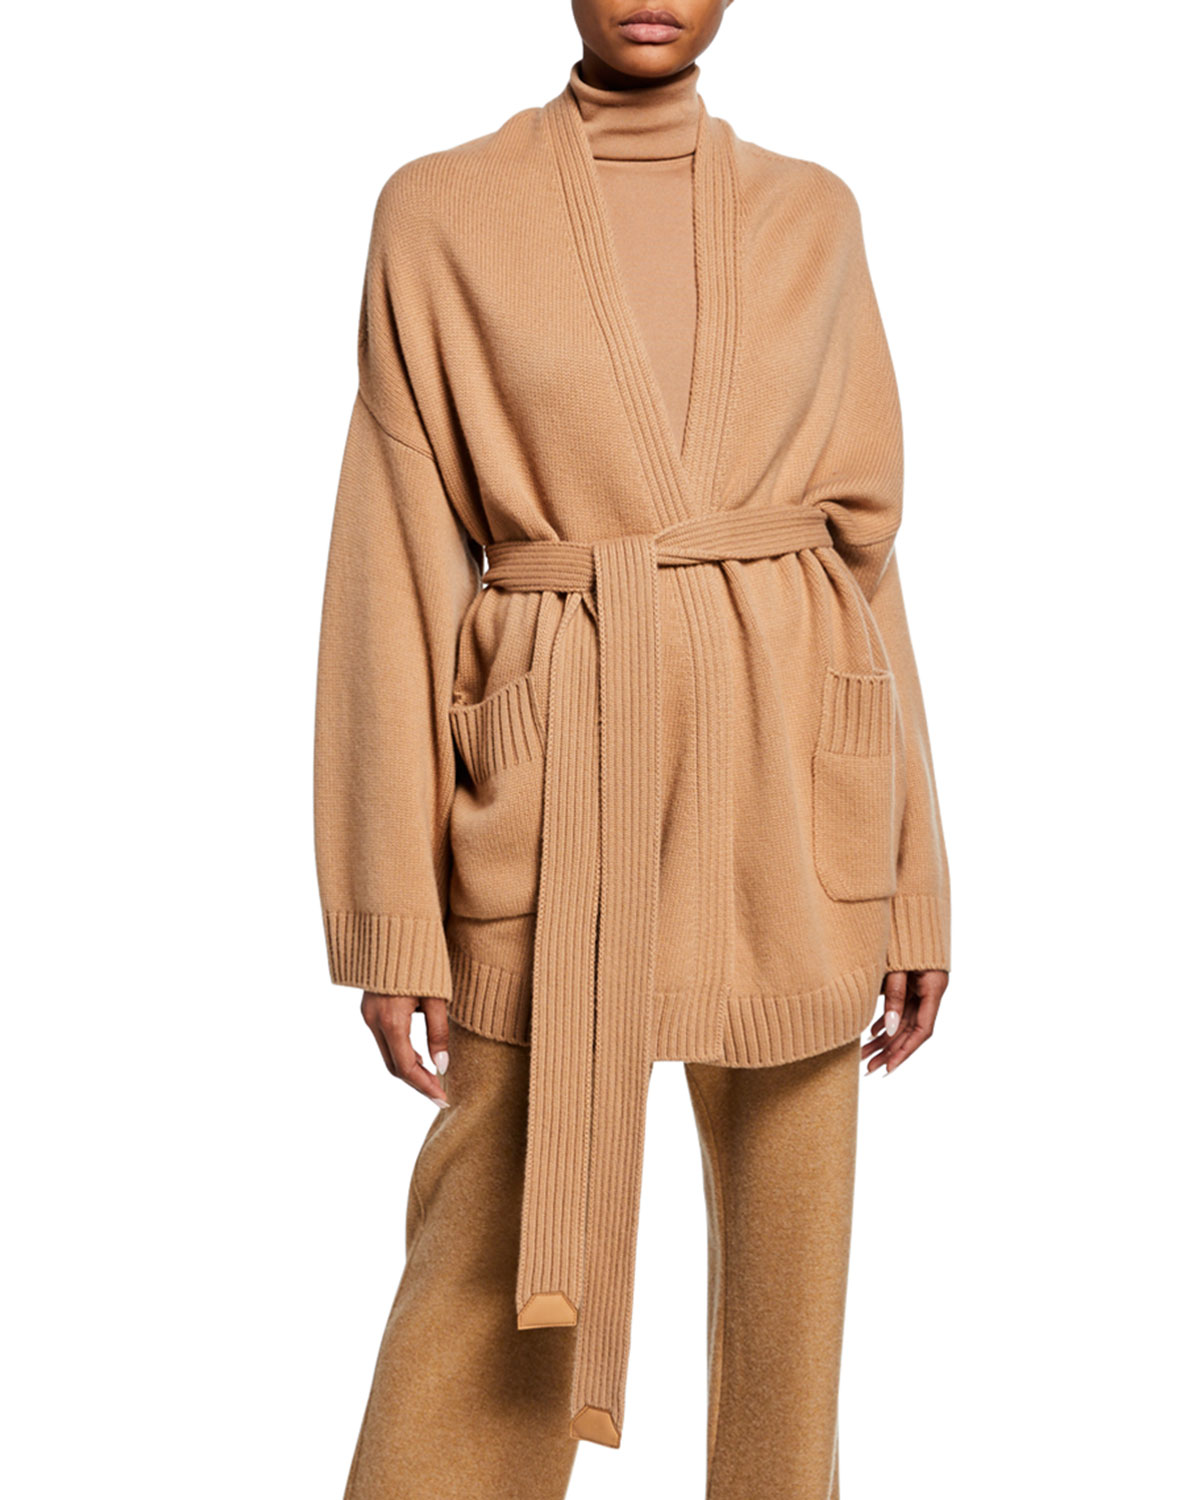 Loro Piana Tops CASHMERE OVERSIZED CARDIGAN